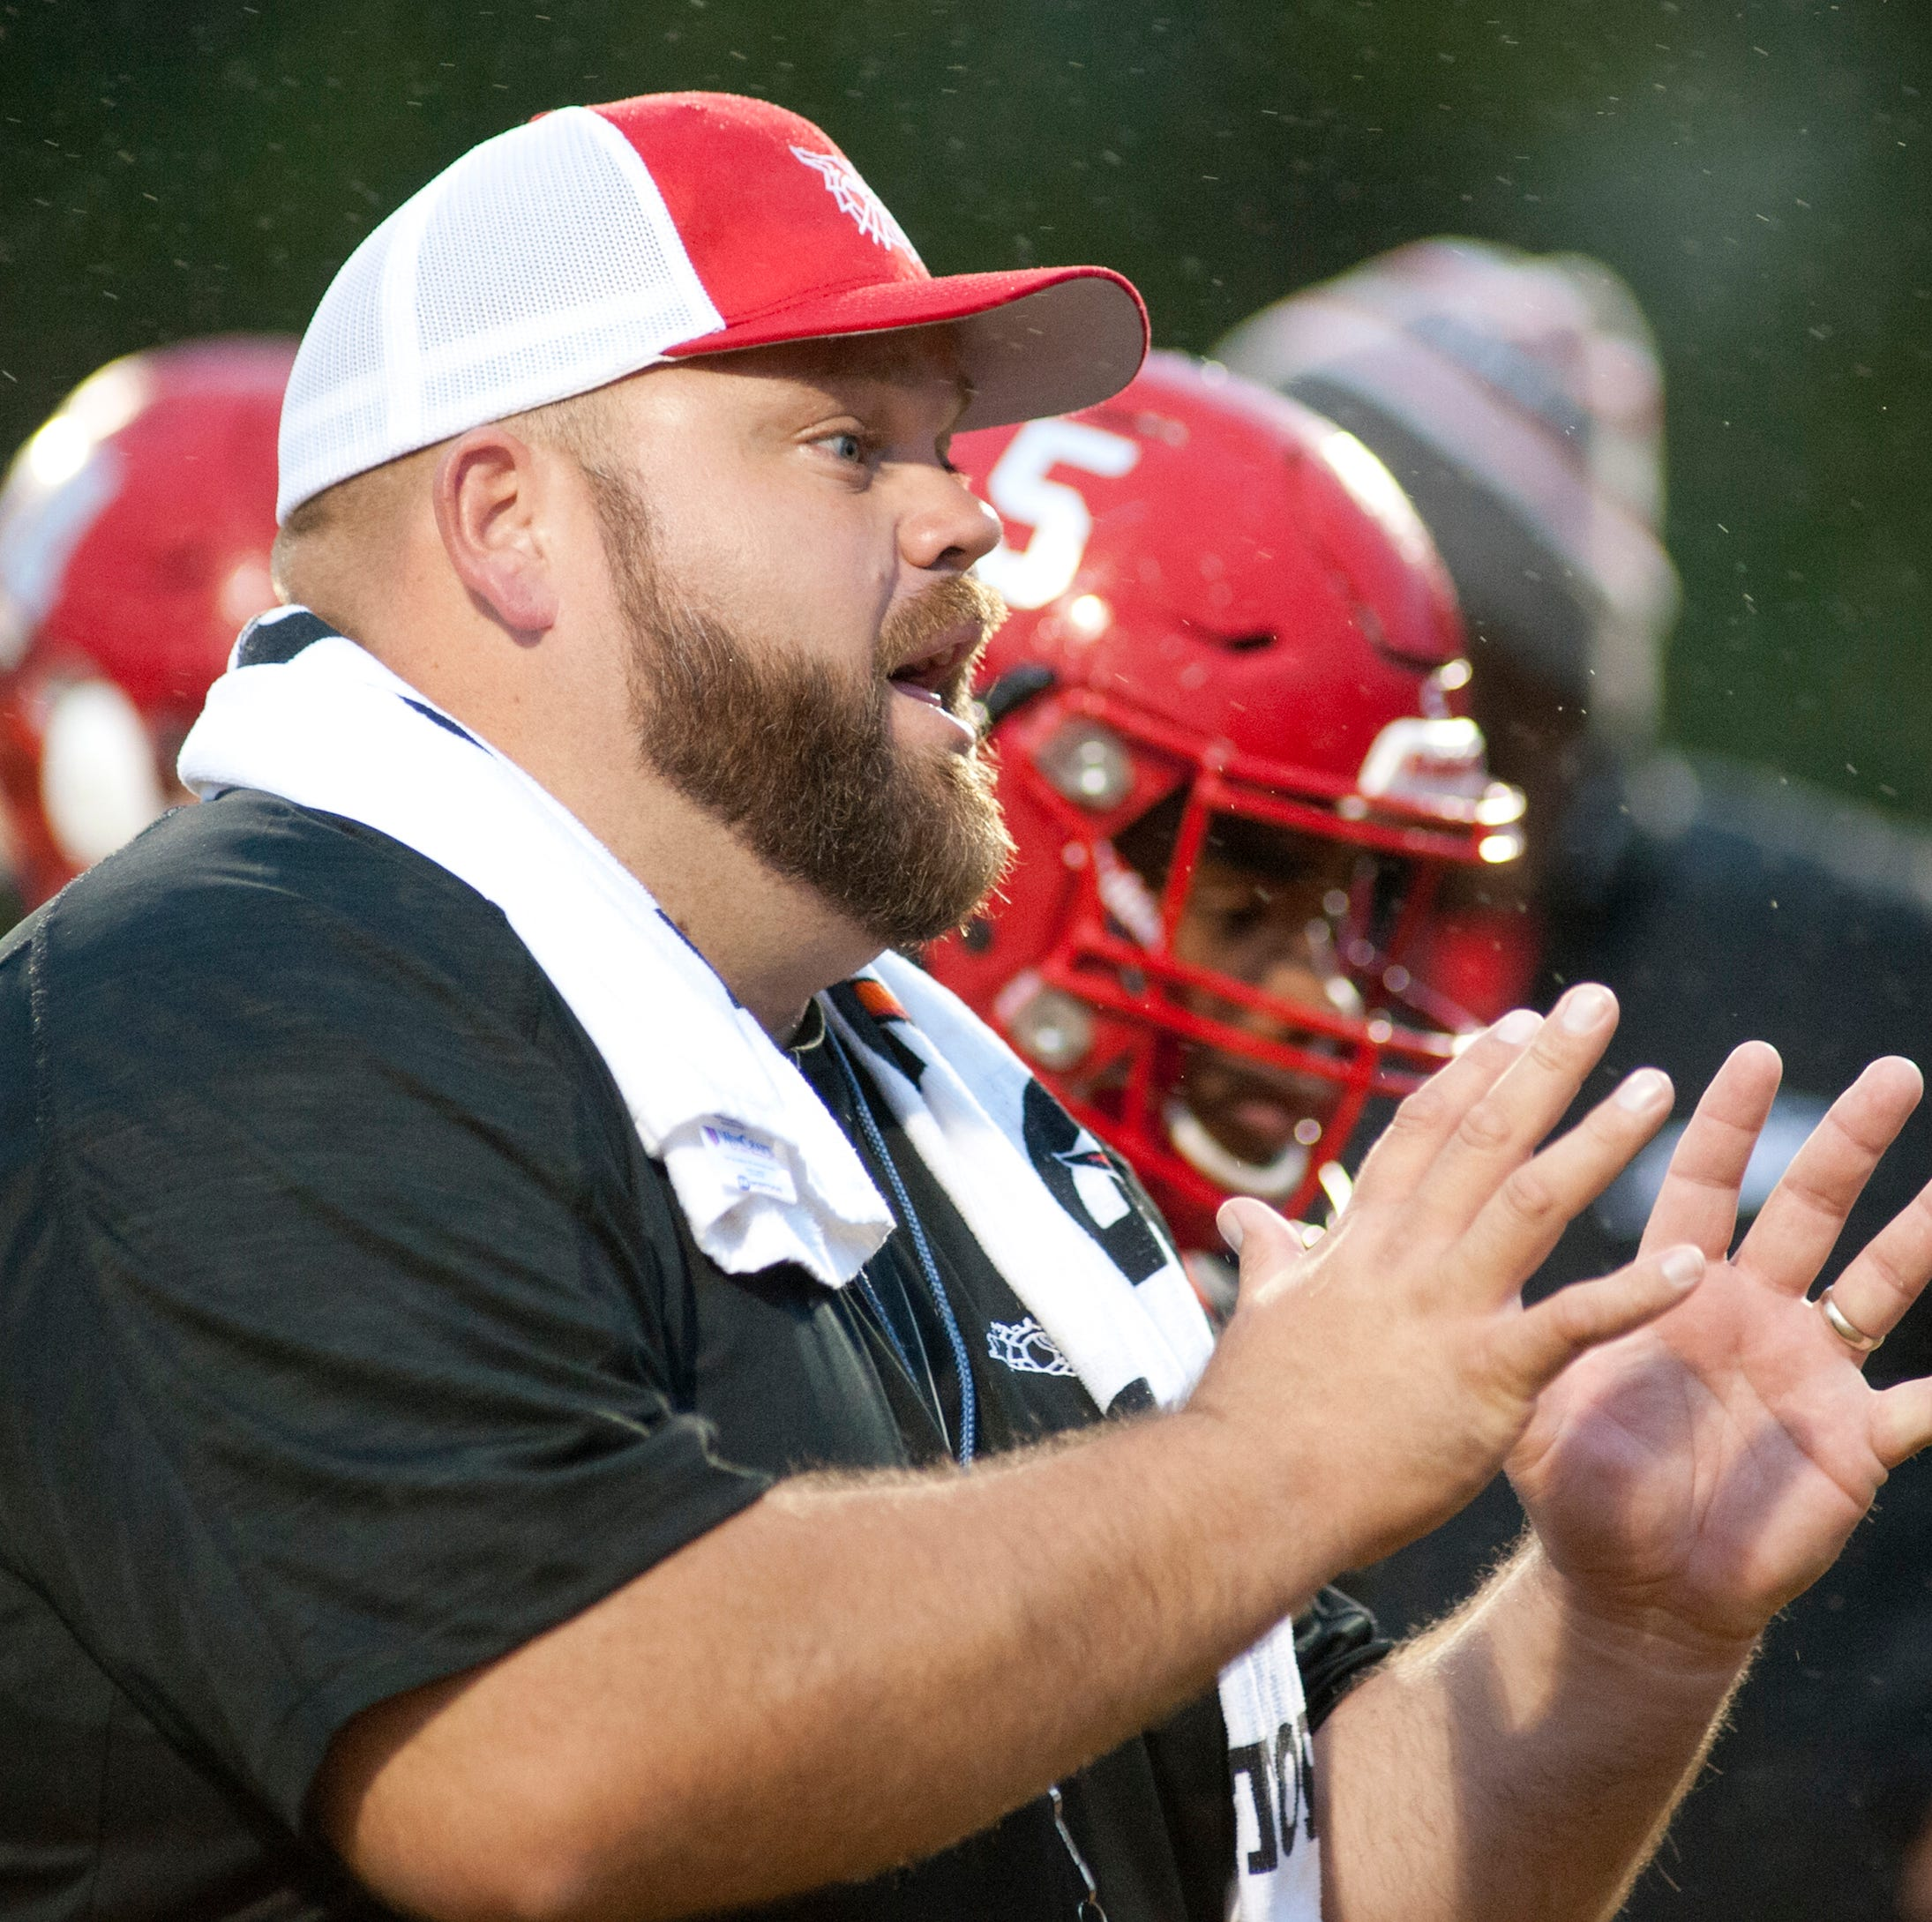 Waggener High School football coach Jordan Johnson reassigned